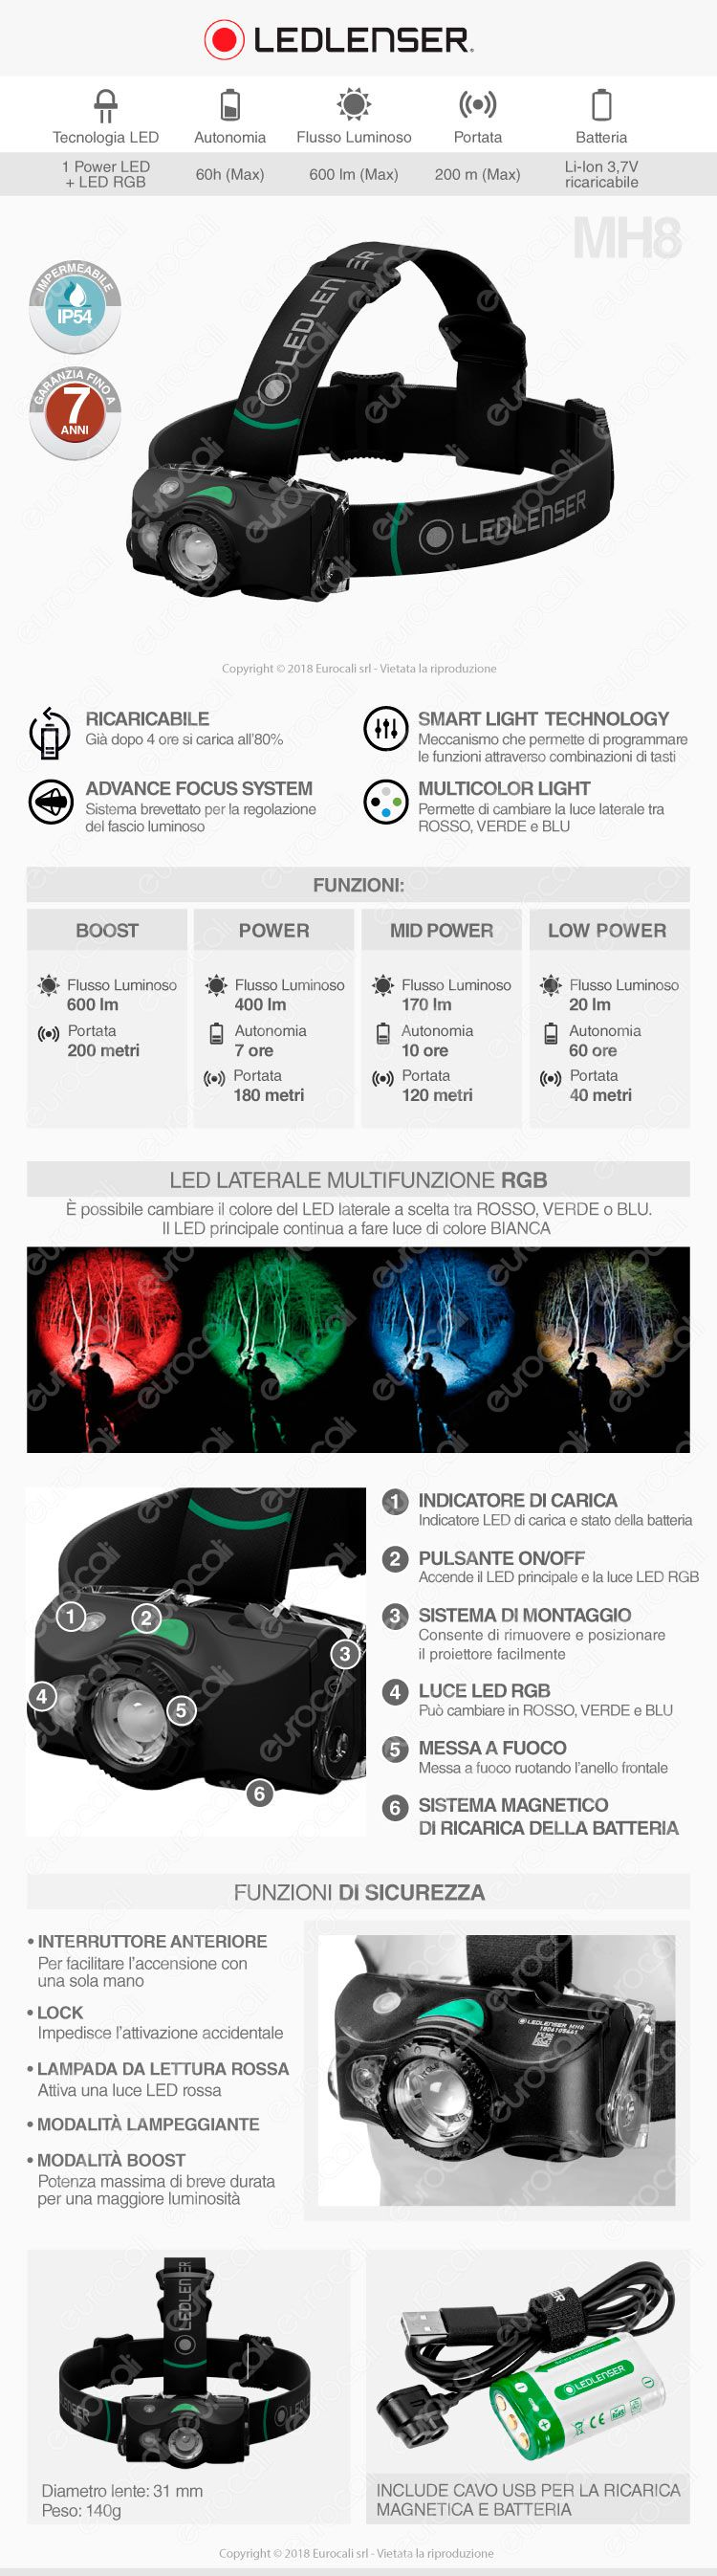 Ledlenser MH8 Torcia LED Headlight Multicolore e Multifunzione Colore Nero - Torcia Frontale